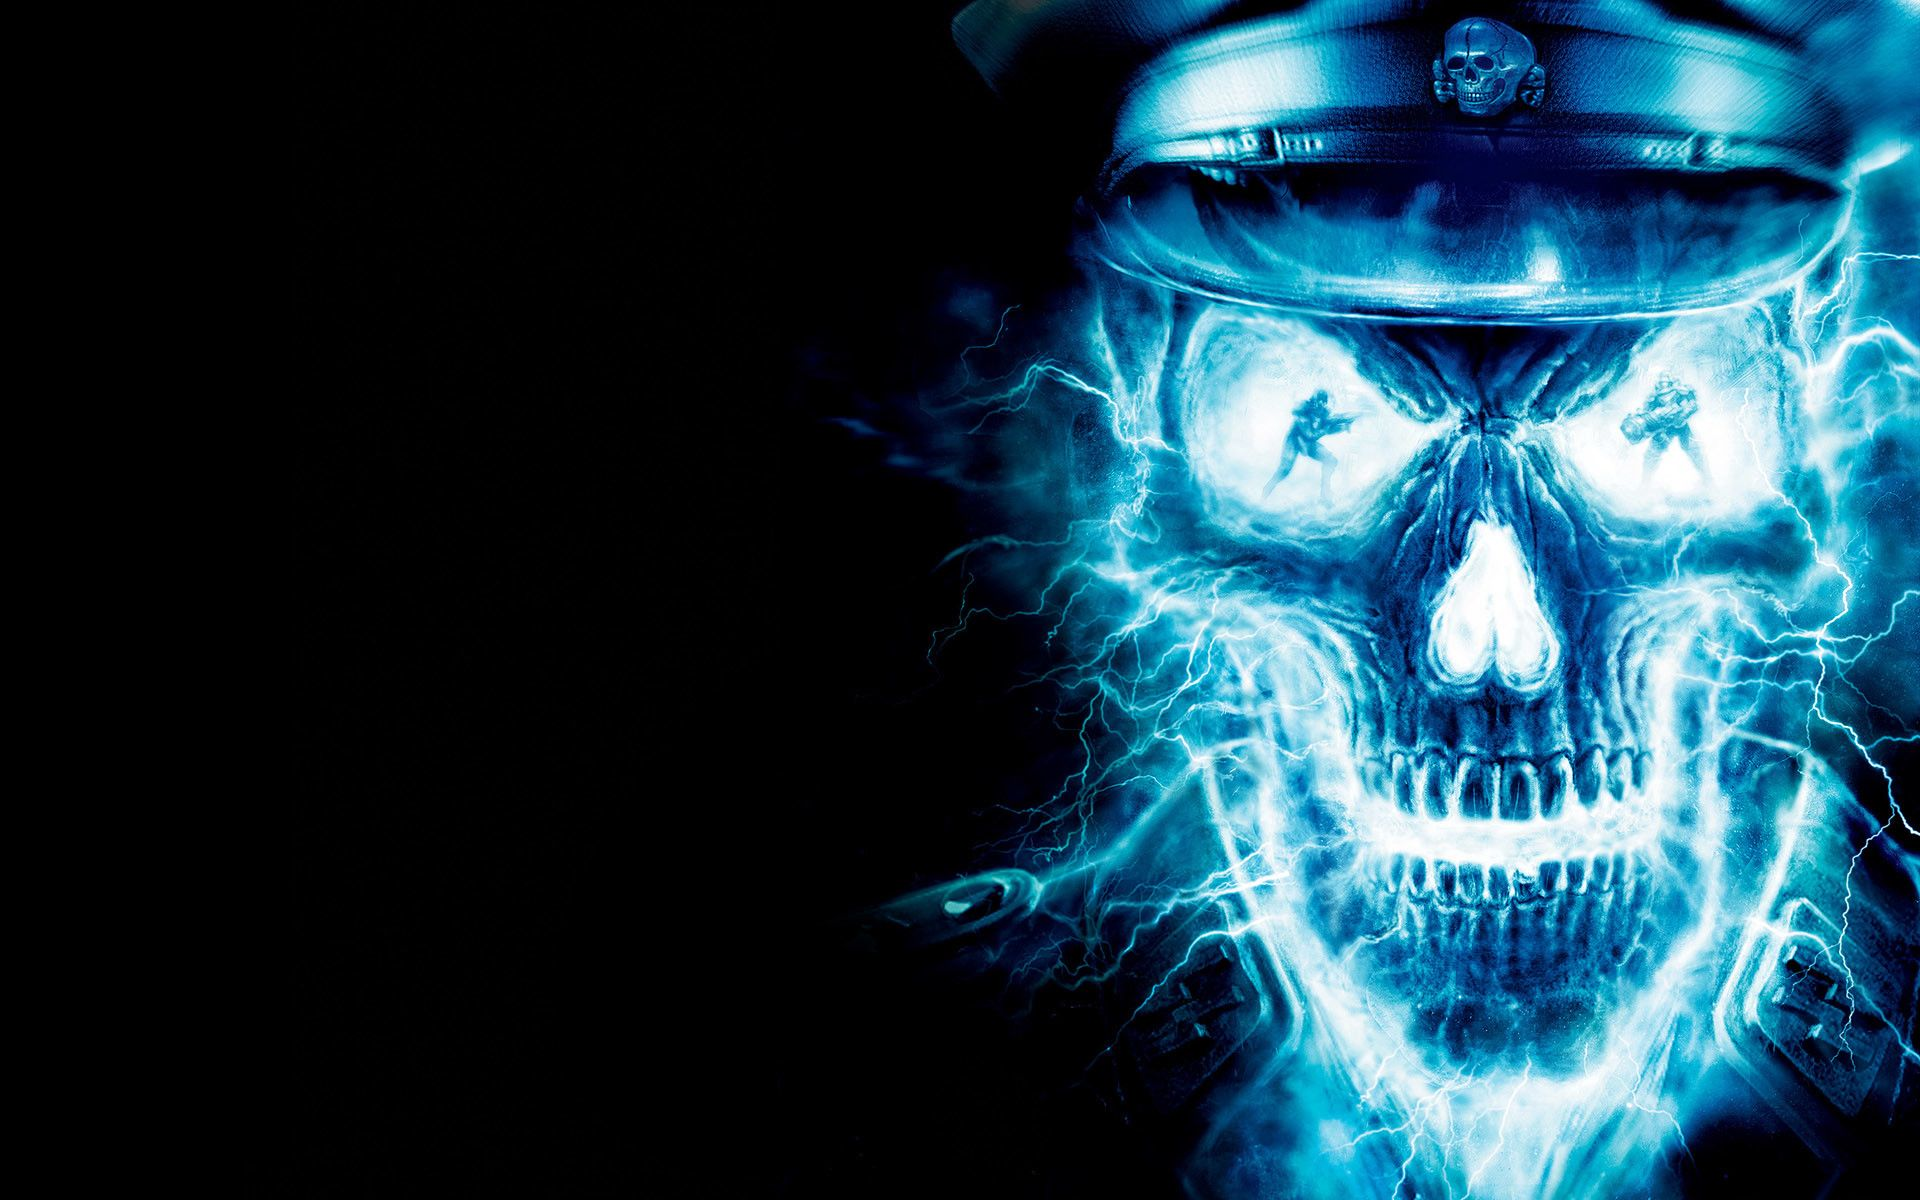 1920x1200 Blue Ghost Rider Wallpaper (59+ images)